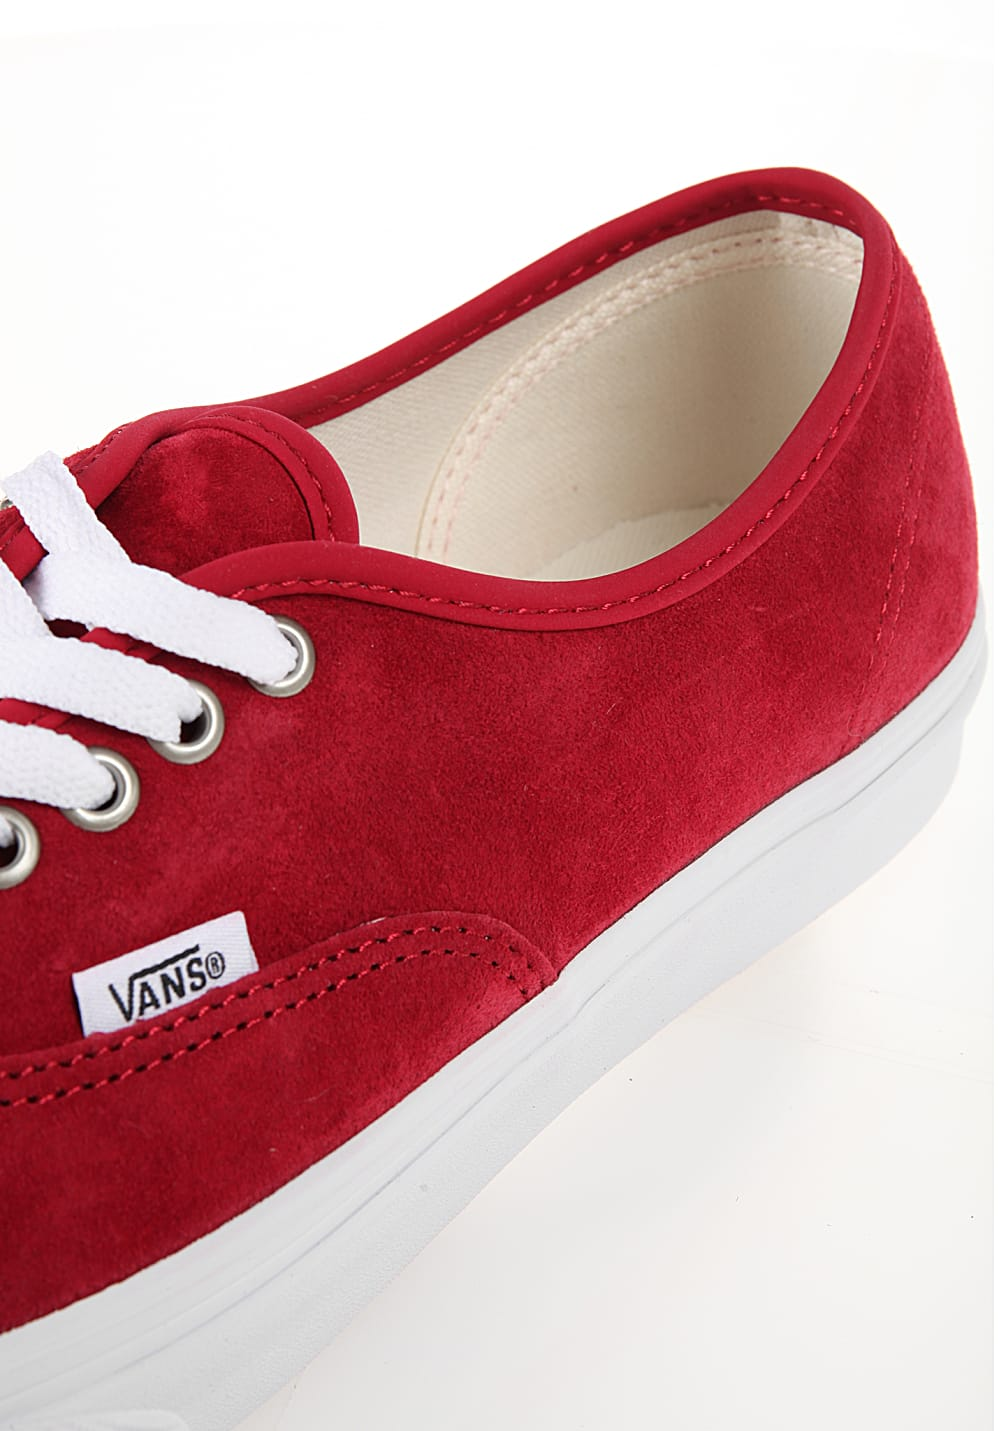 VANS Authentic - Sneaker für Damen - Rot